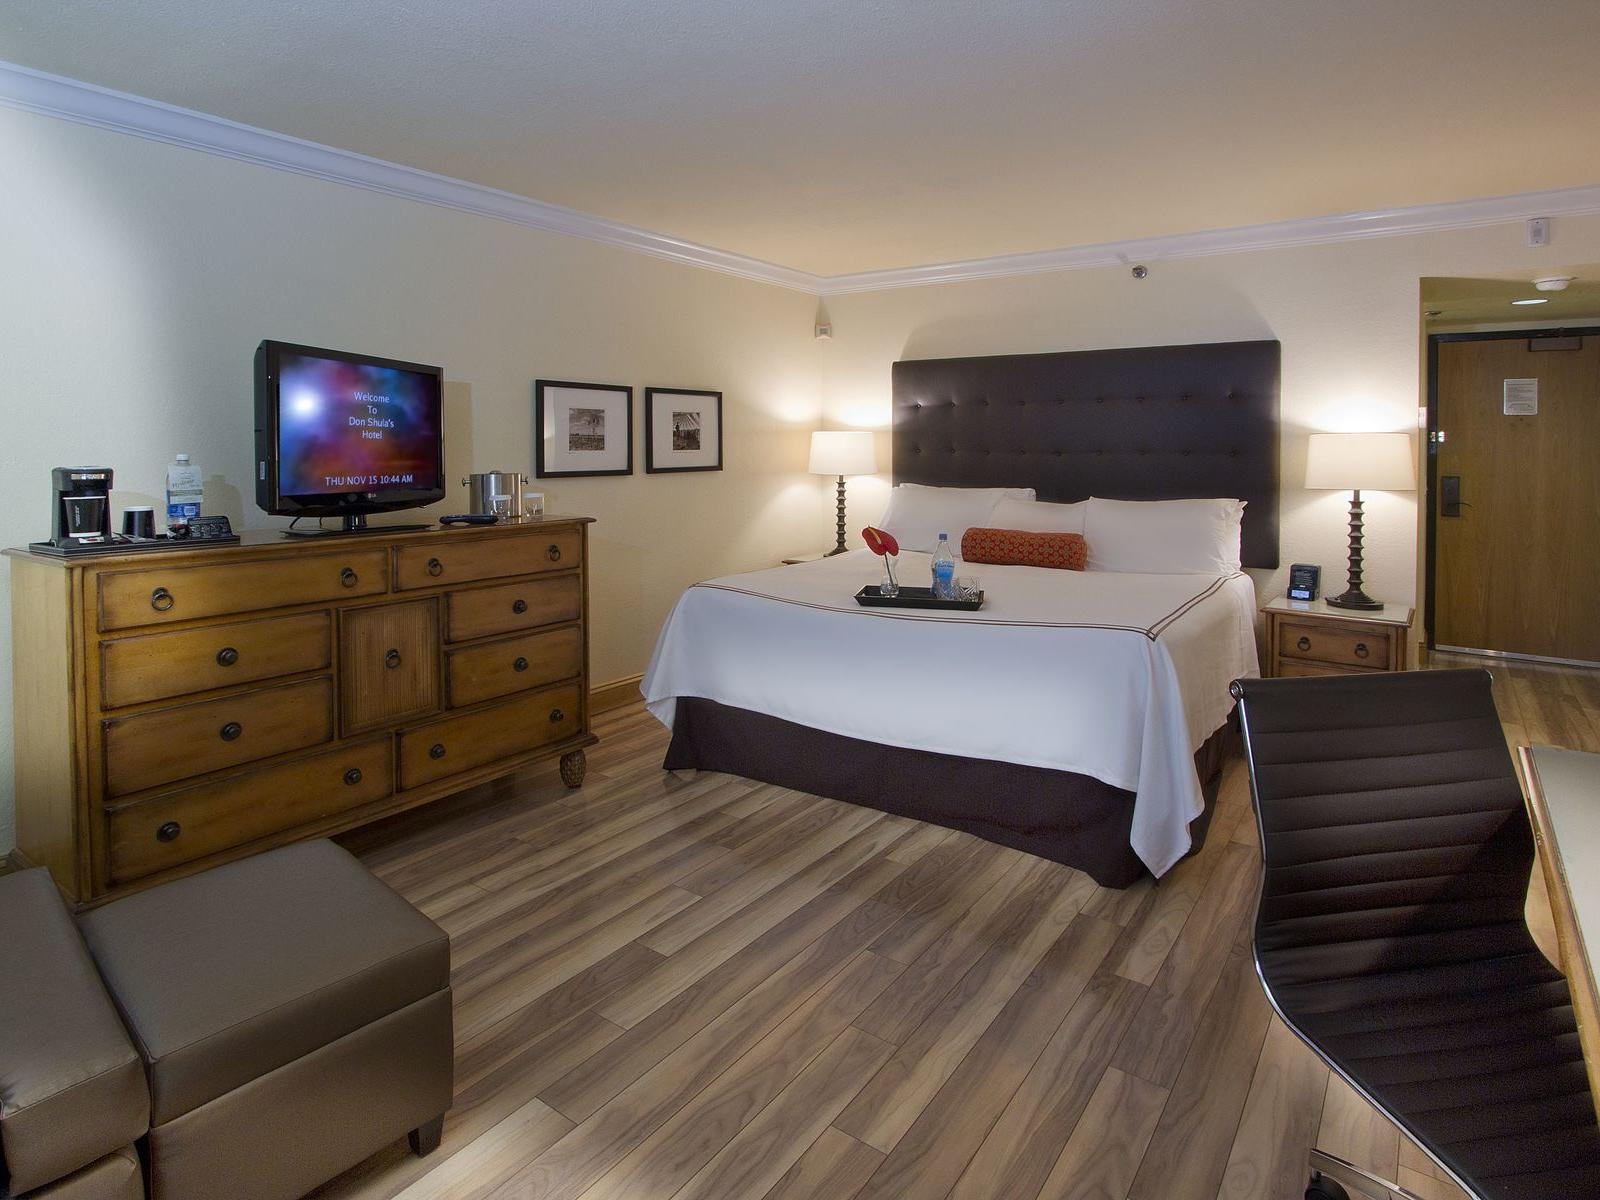 room with king bed, dresser and television